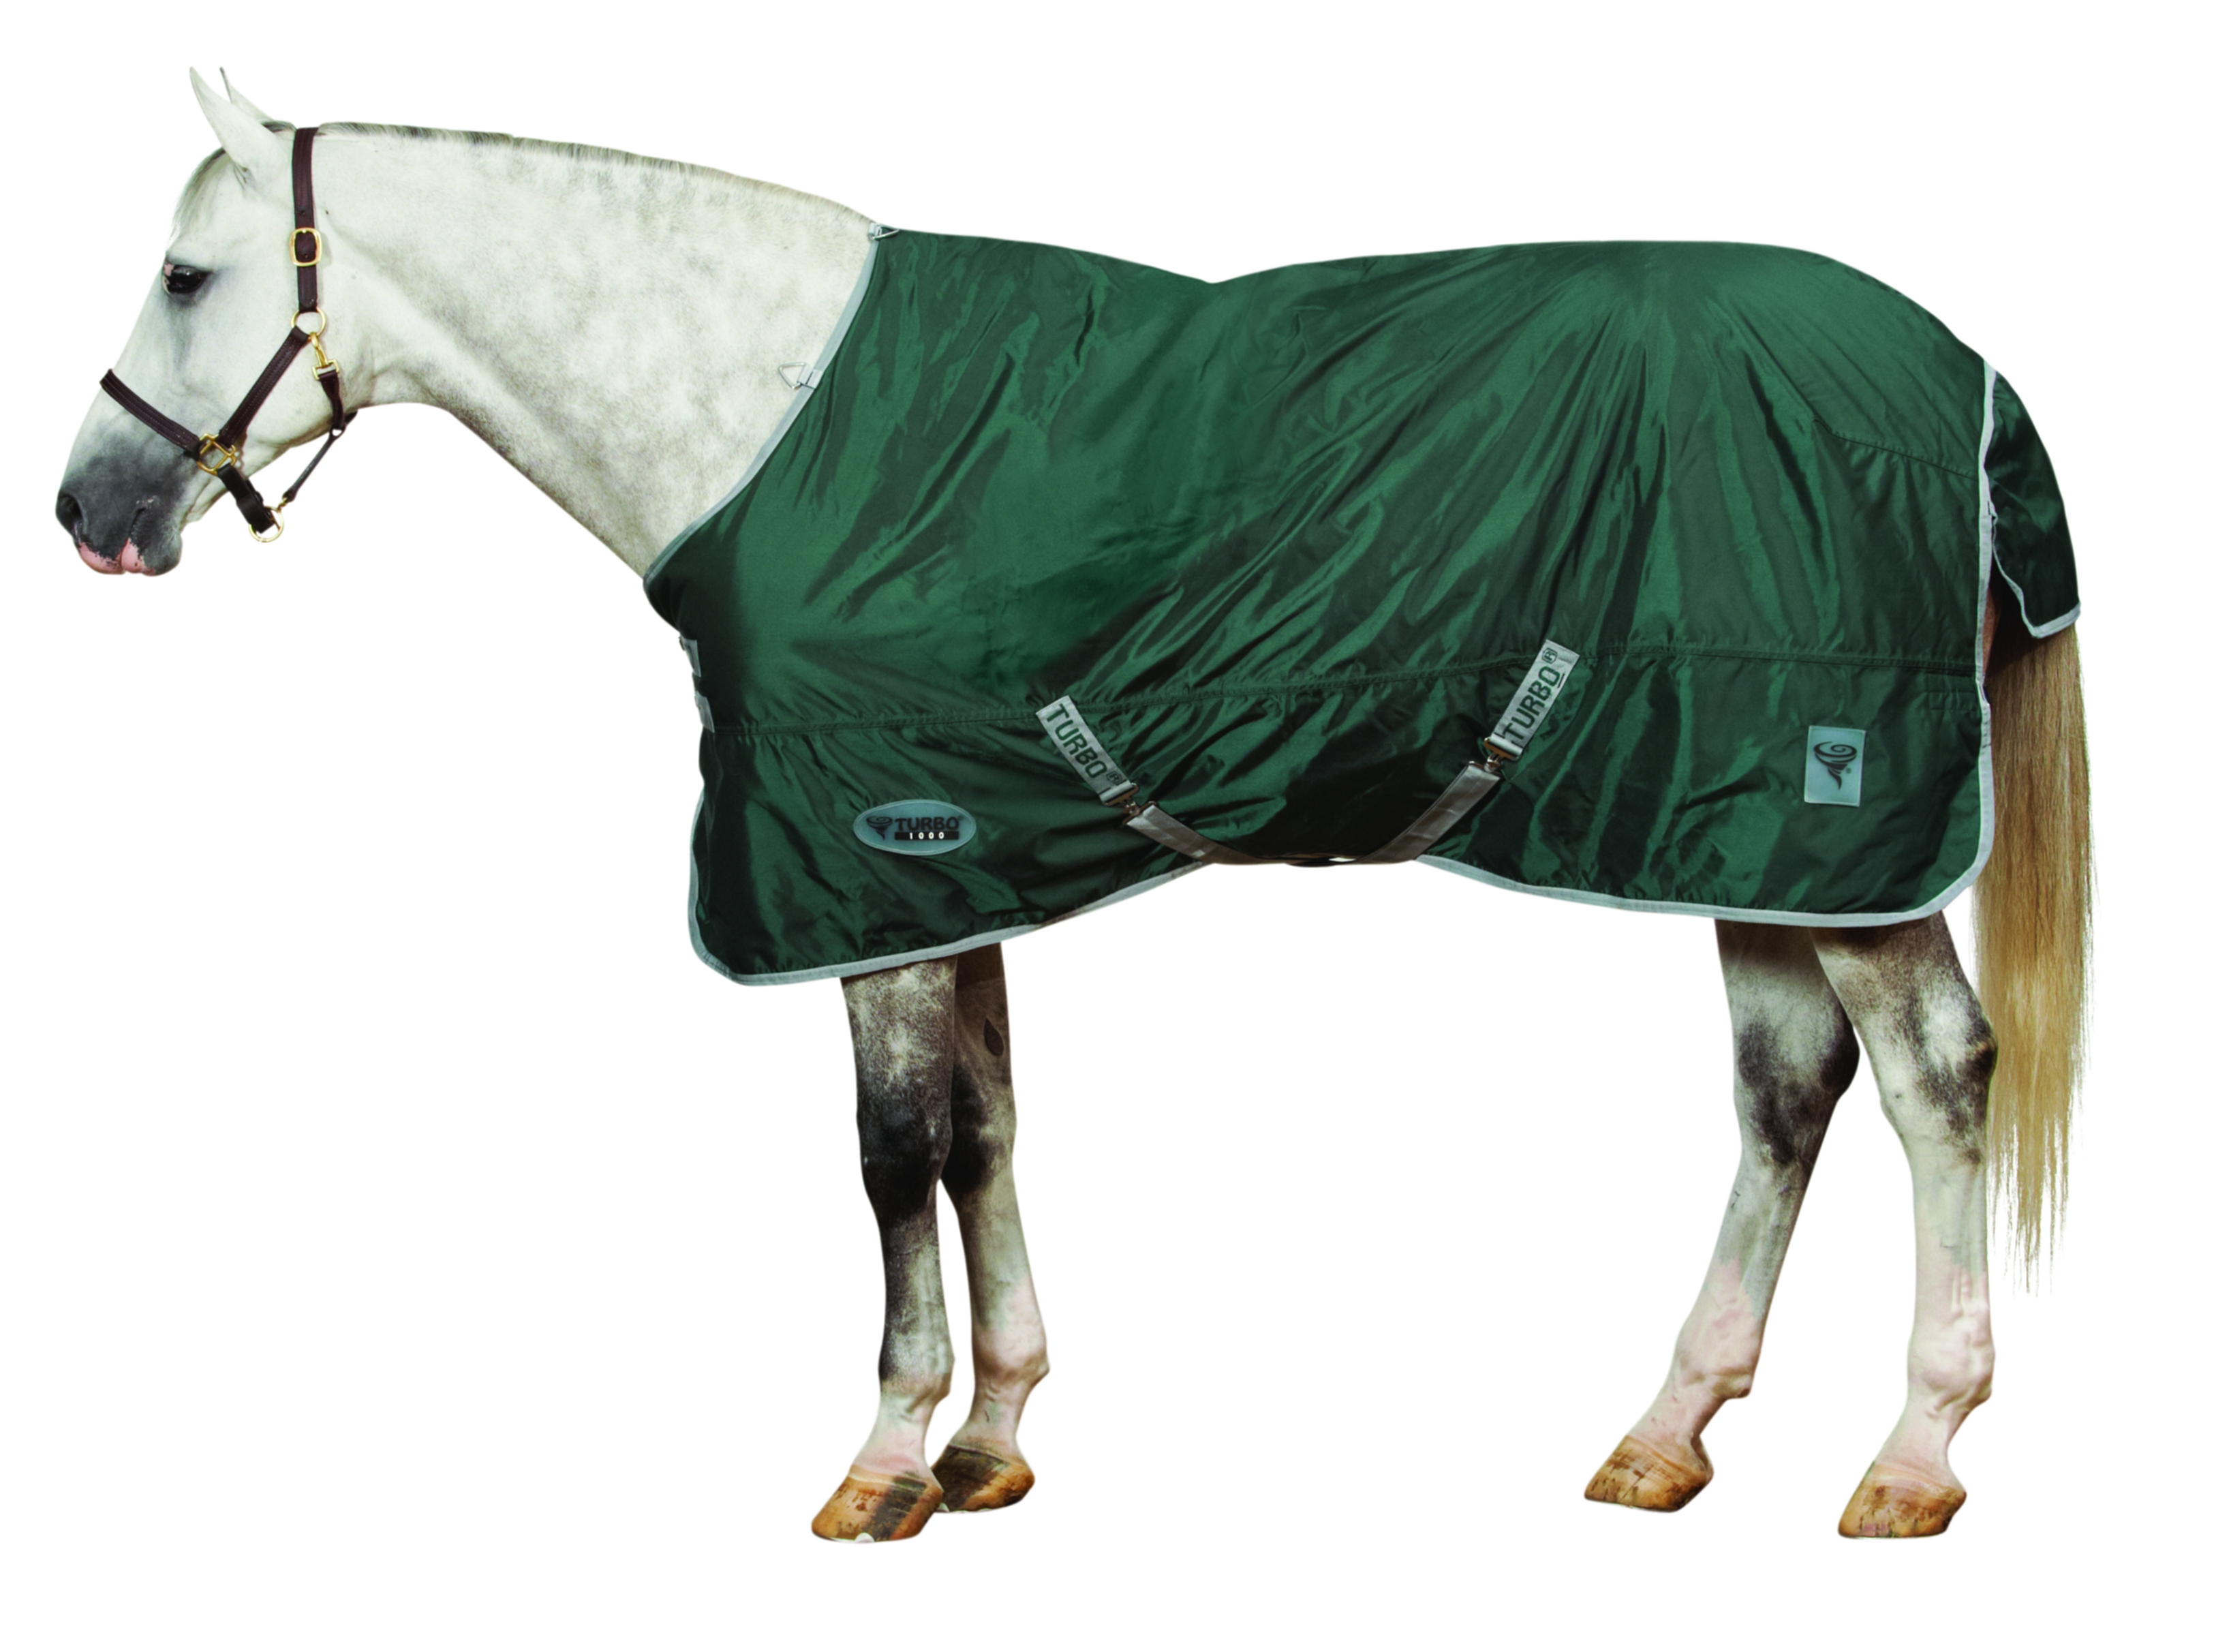 Centaur Turbo 1000D Waterproof / Breathable Turnout Sheet